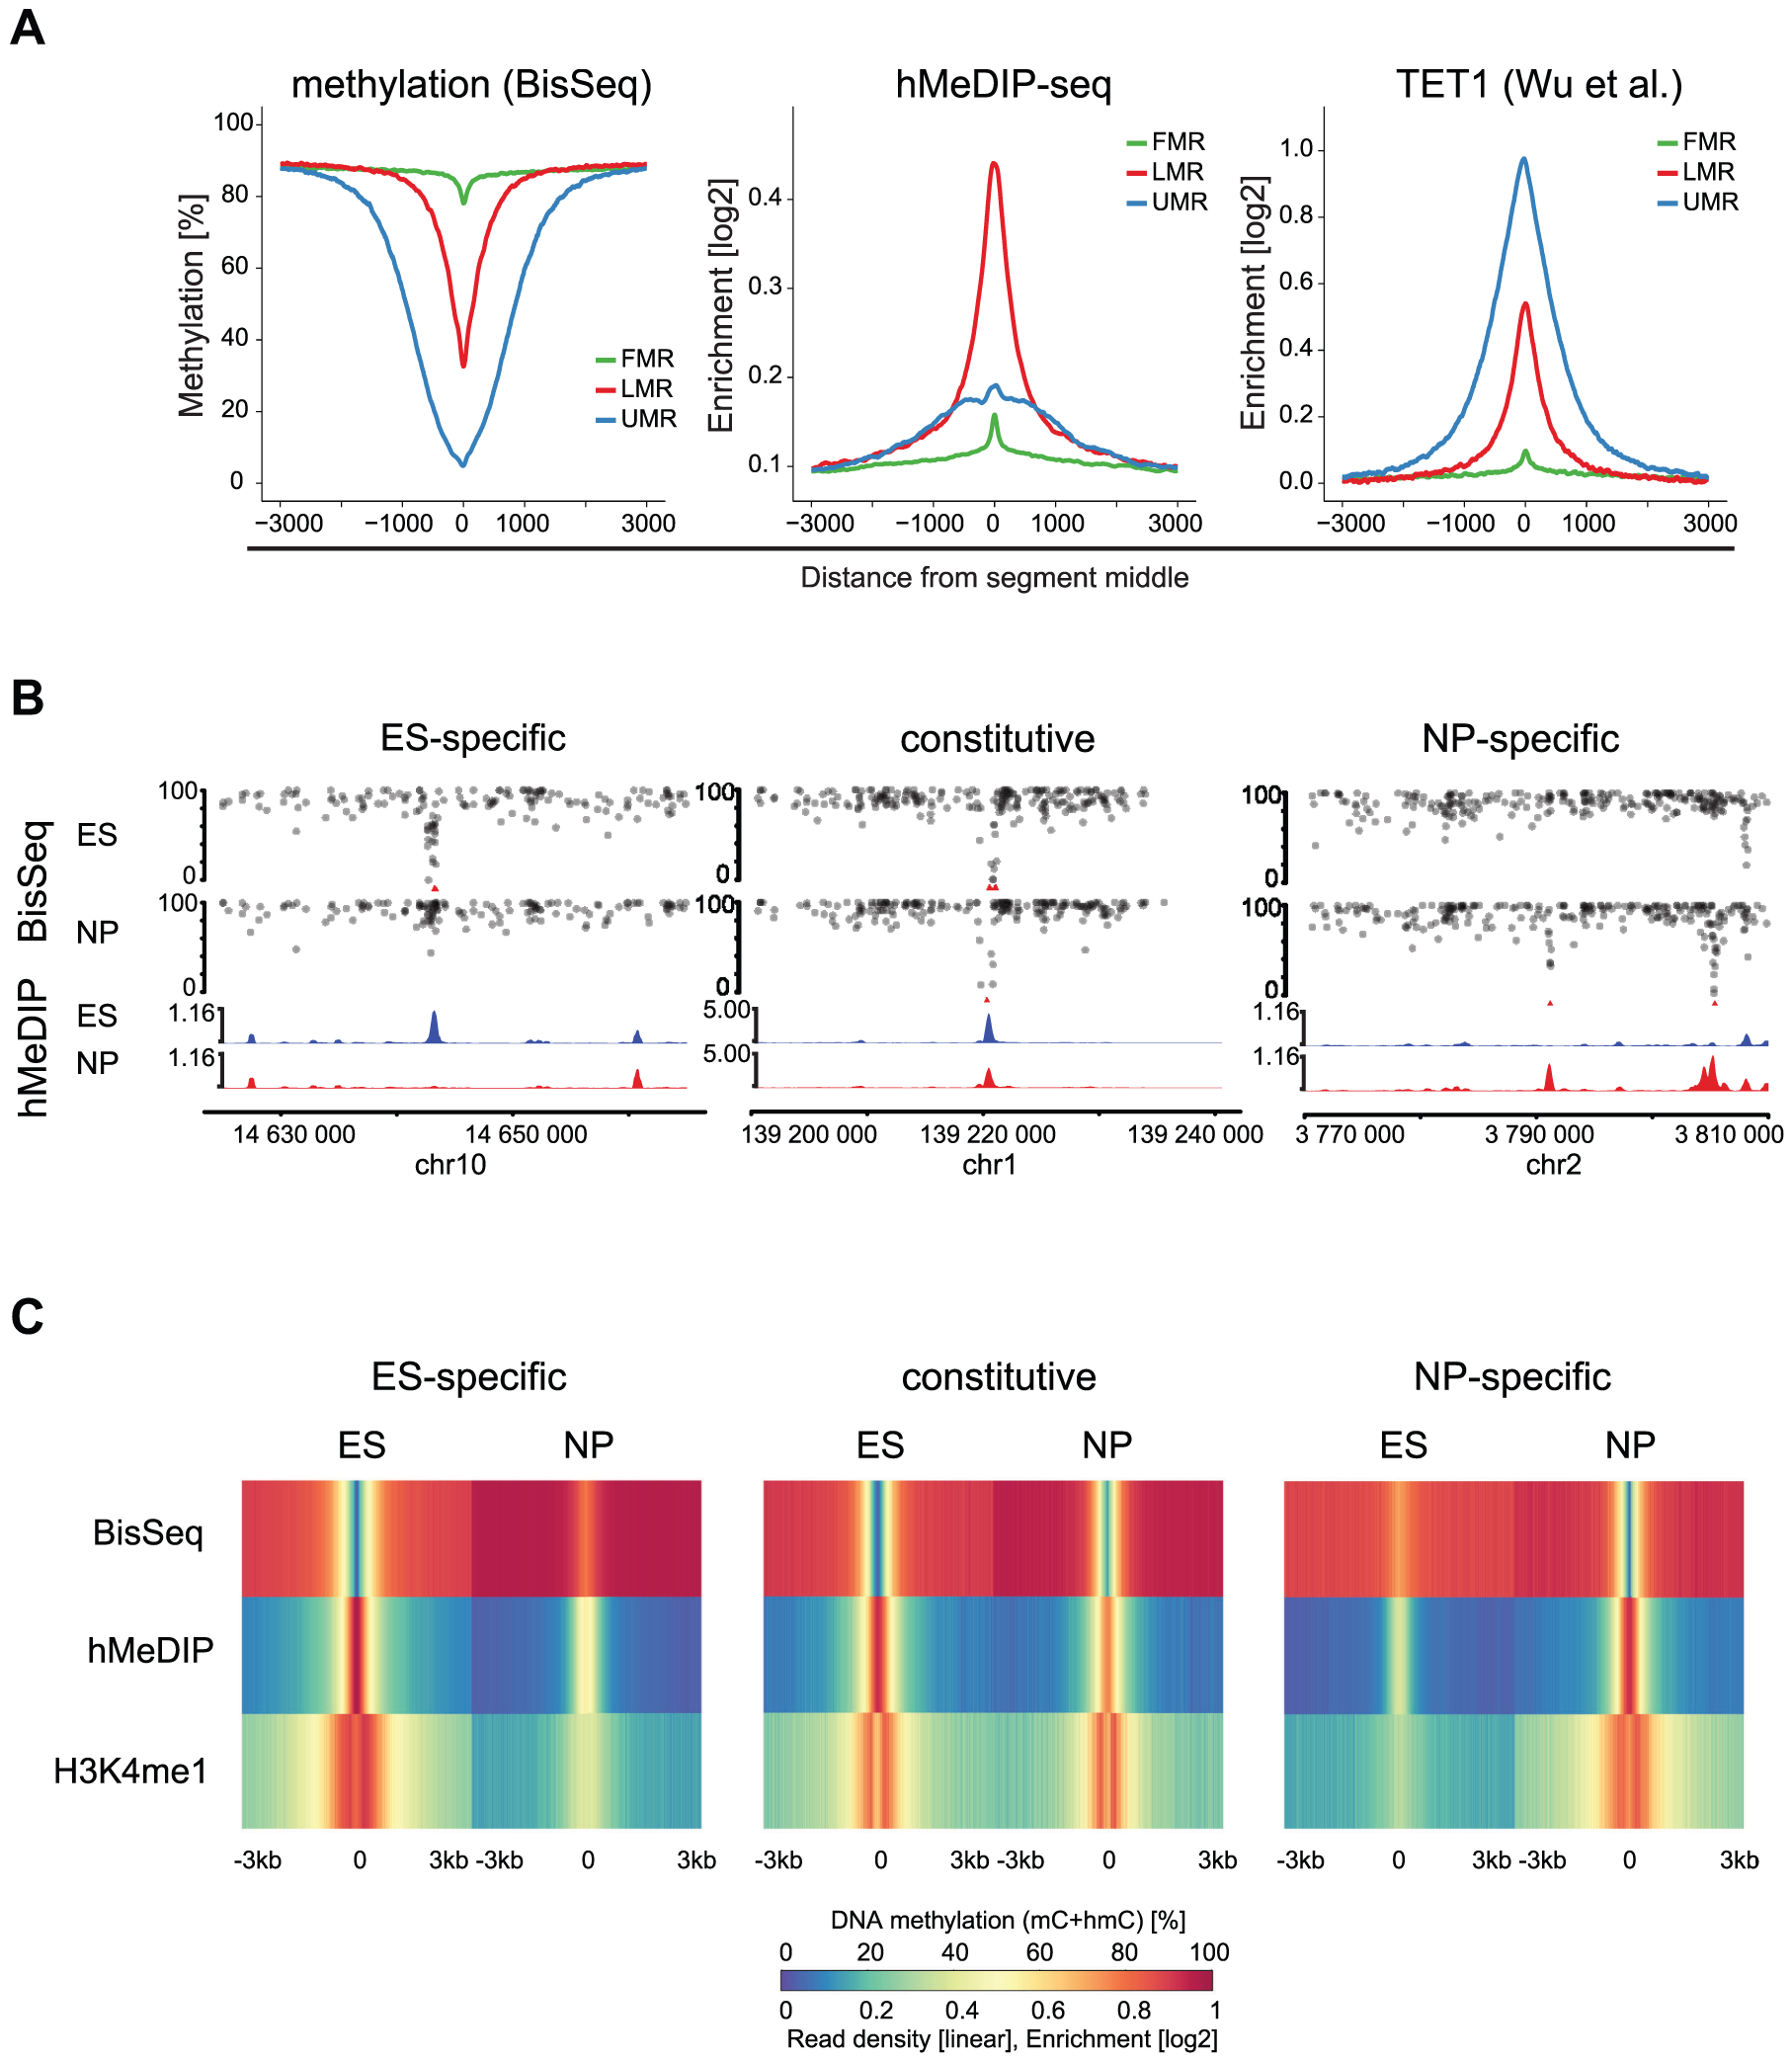 5hmC marks LMRs in a cell-type specific fashion.